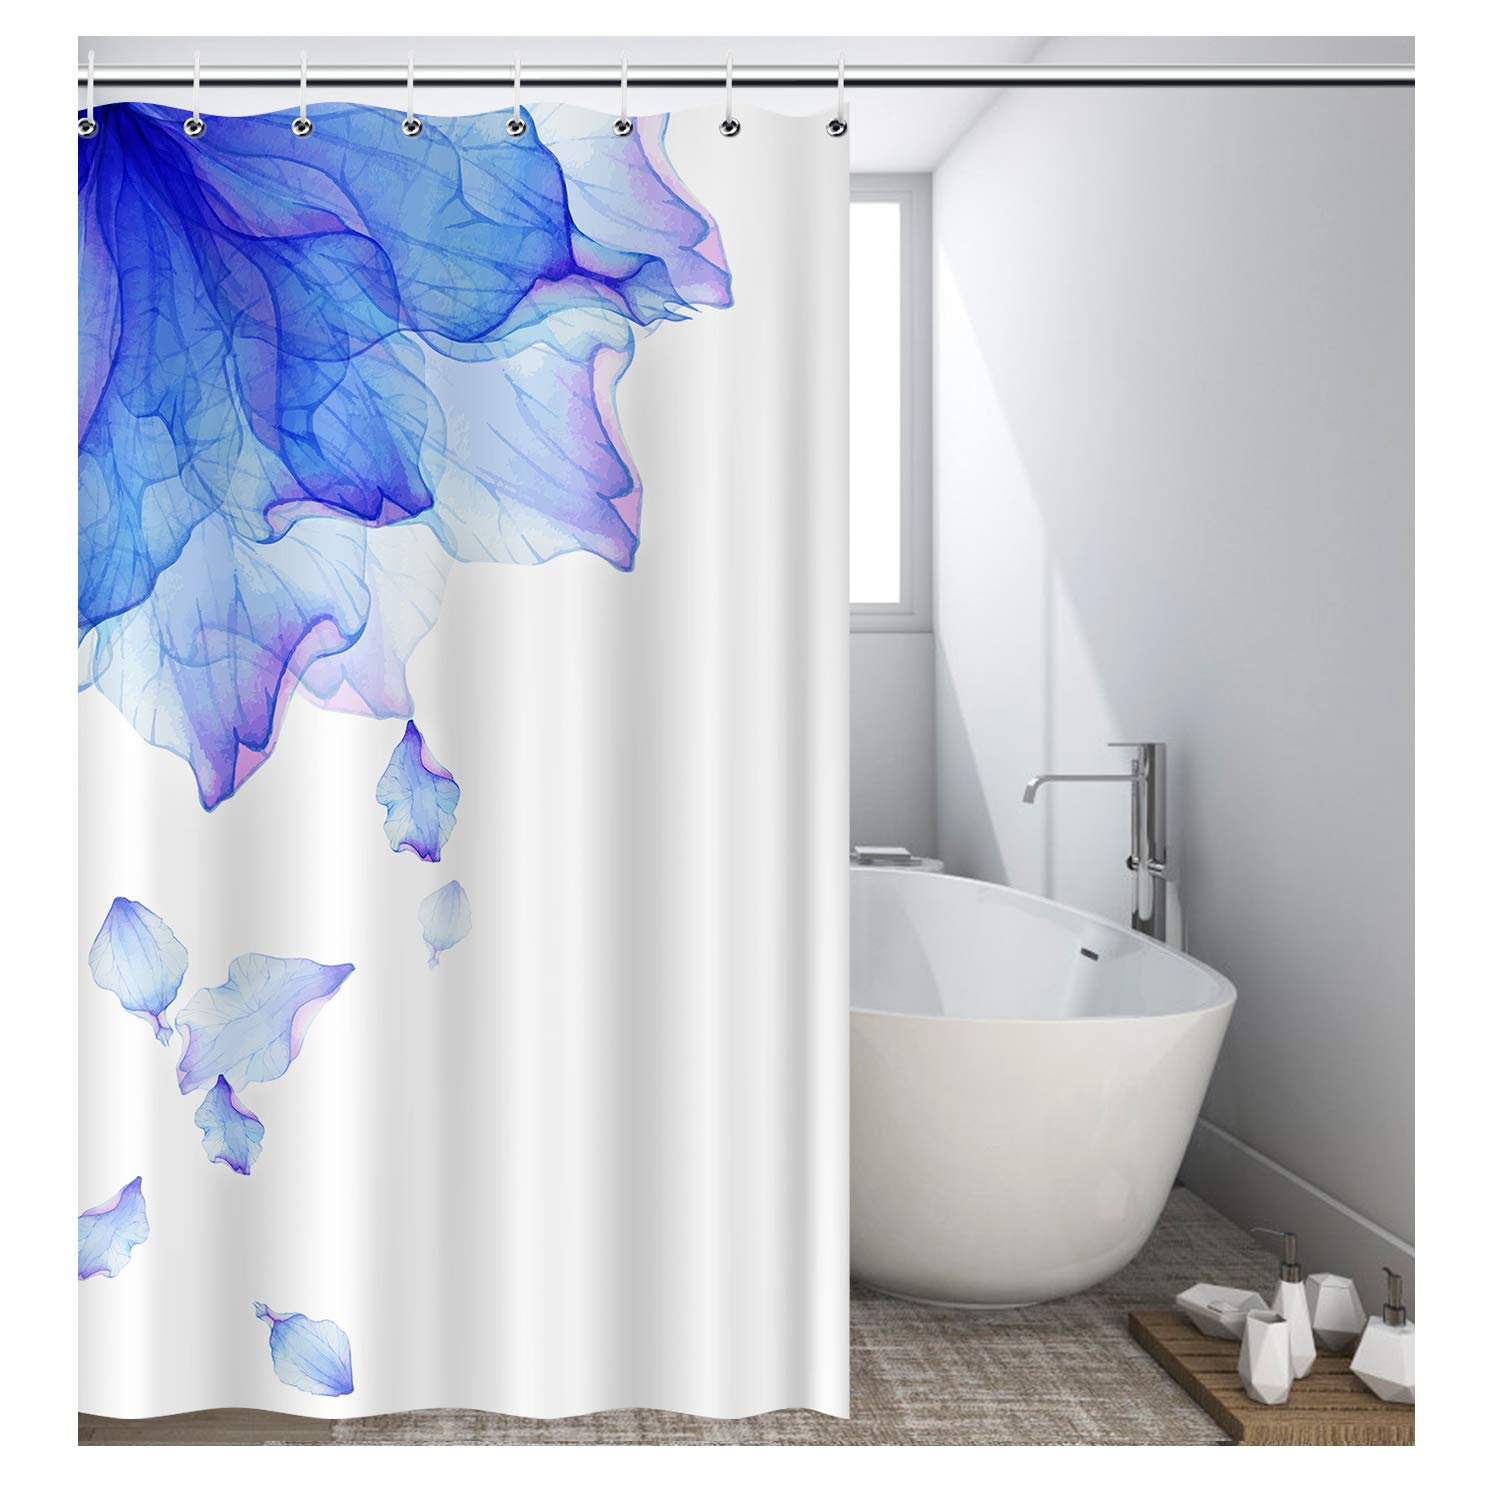 Vibesicily Shower Curtain, Durable Polyester Fabric Waterproof Bath Curtain for Bathroom Home Decor with 12 Hooks 71 x 71 Inch